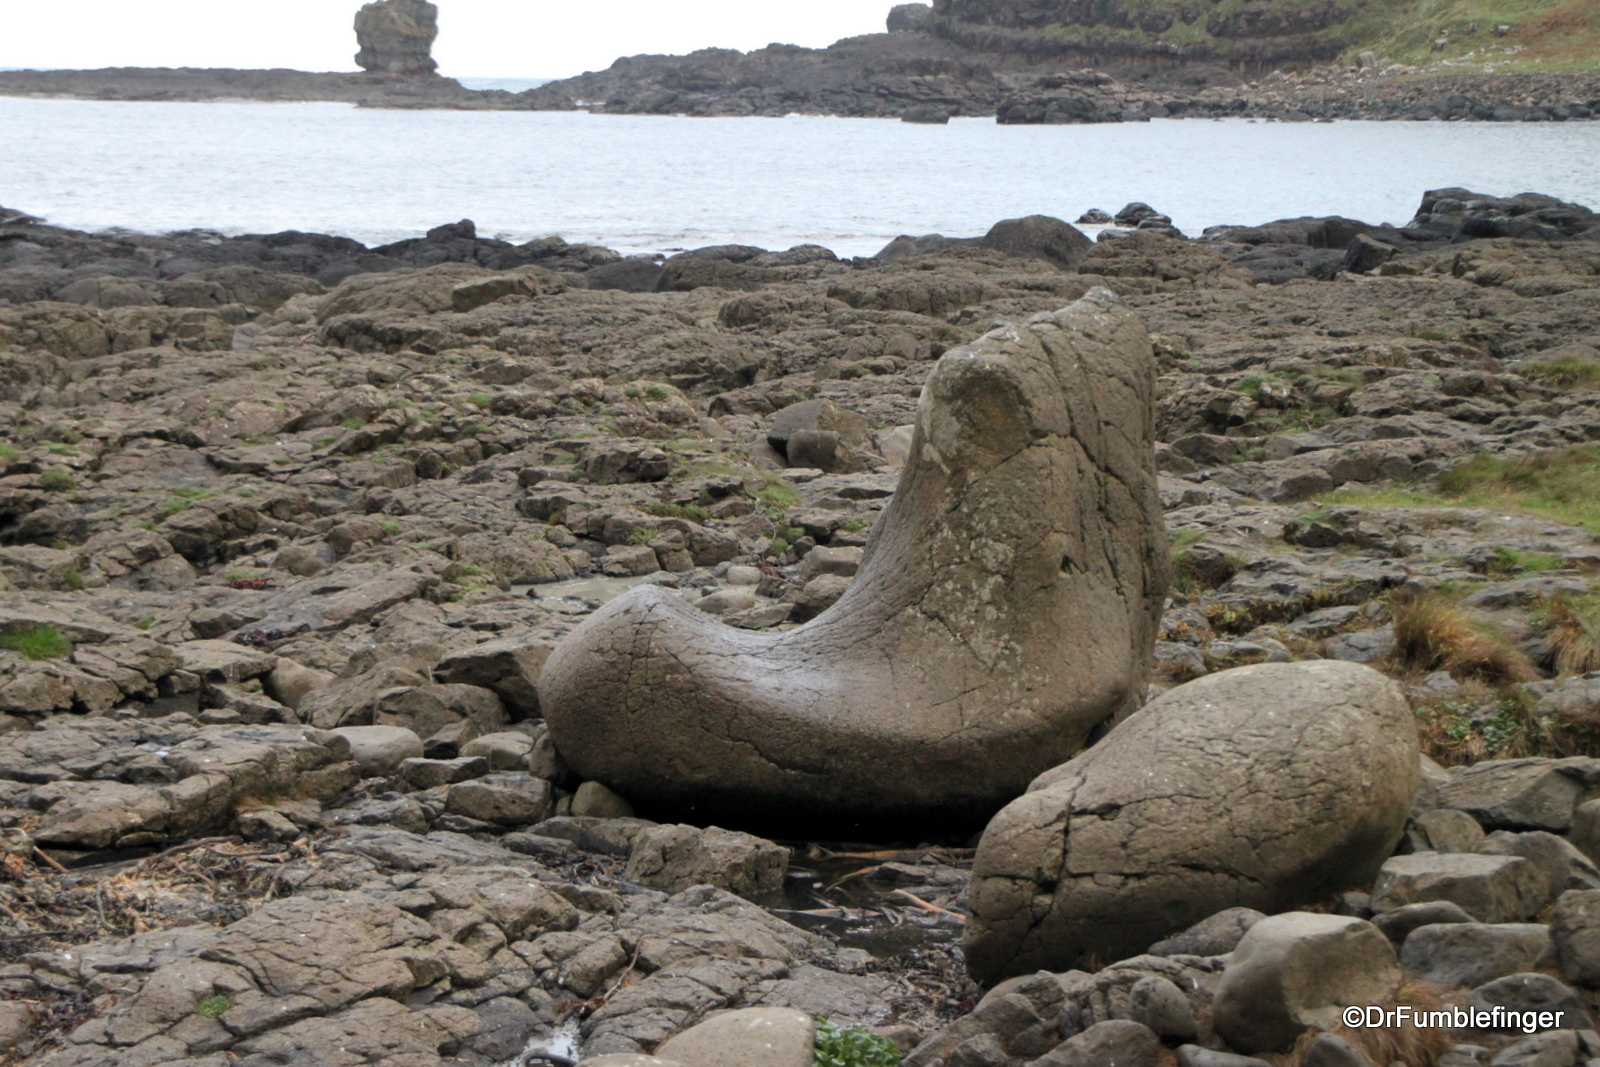 Giant's Shoe on the Giant's Causeway